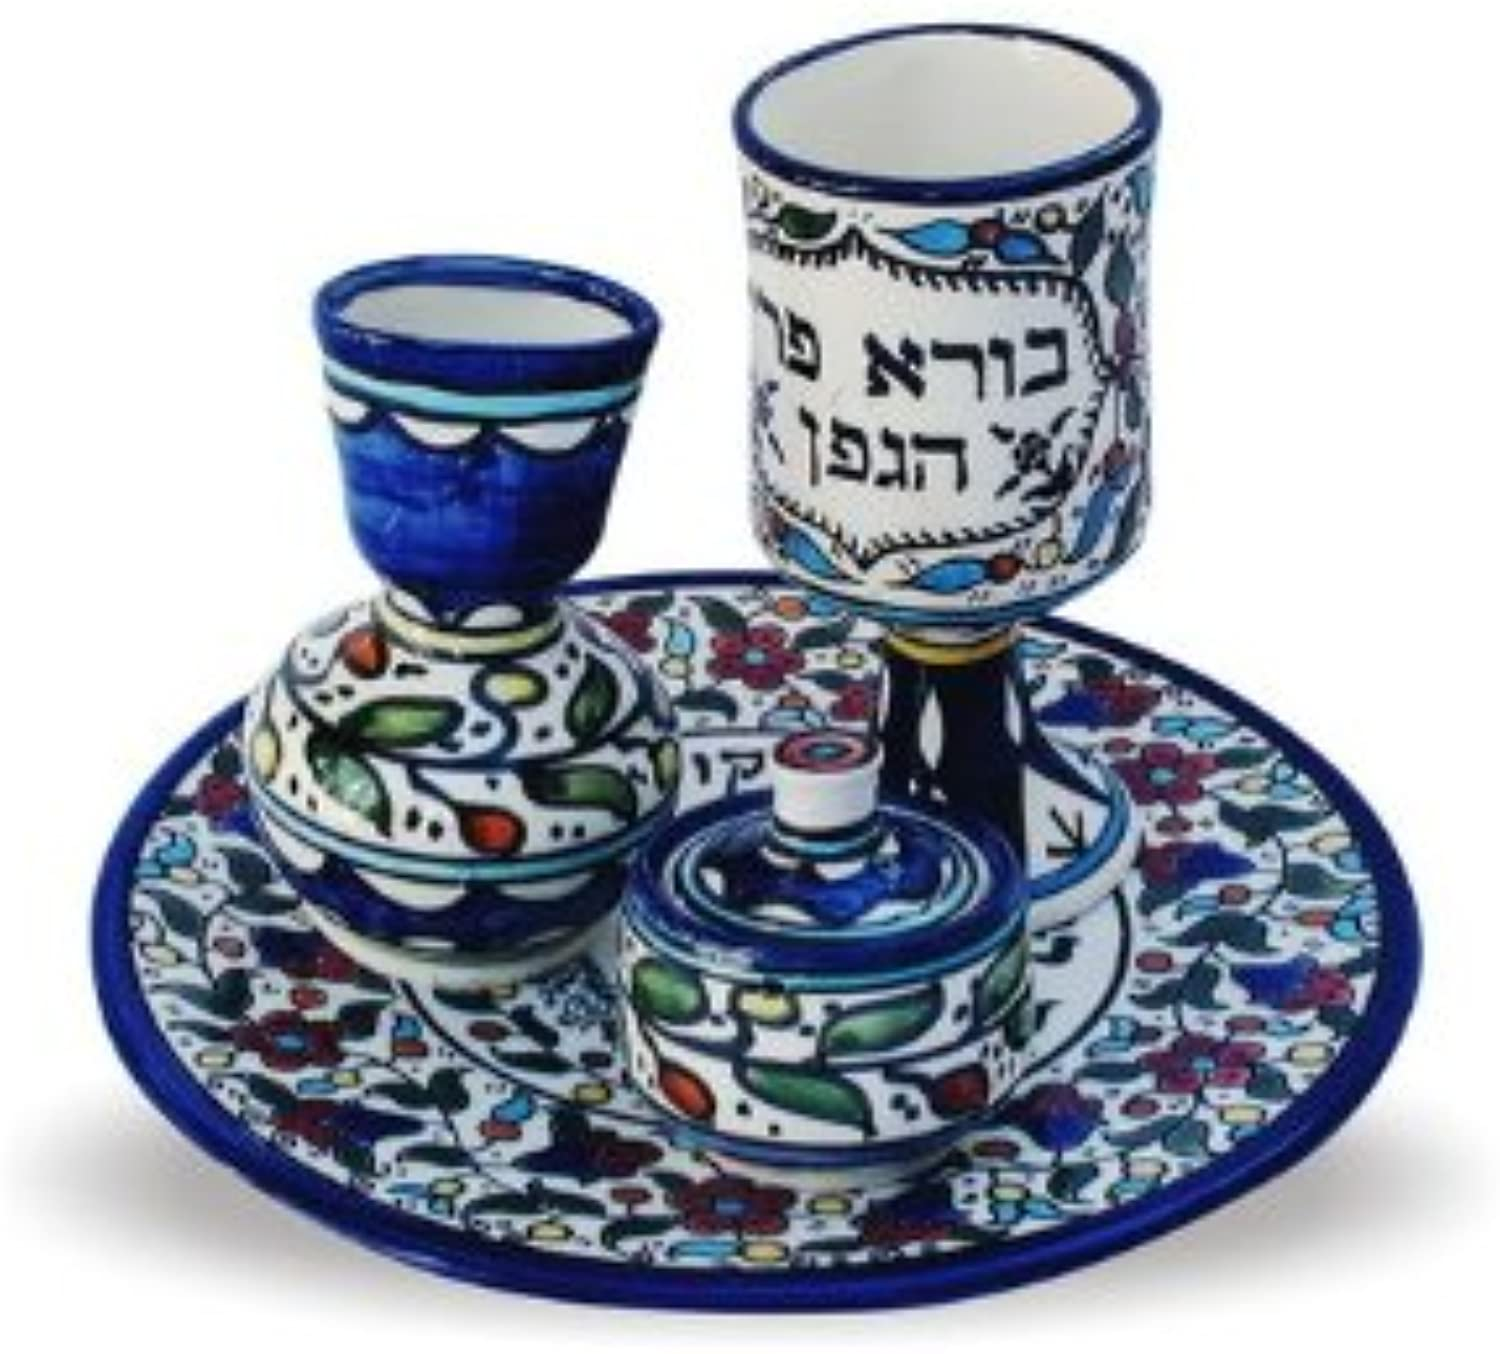 22cm four piece Havdallah set painted in bluee